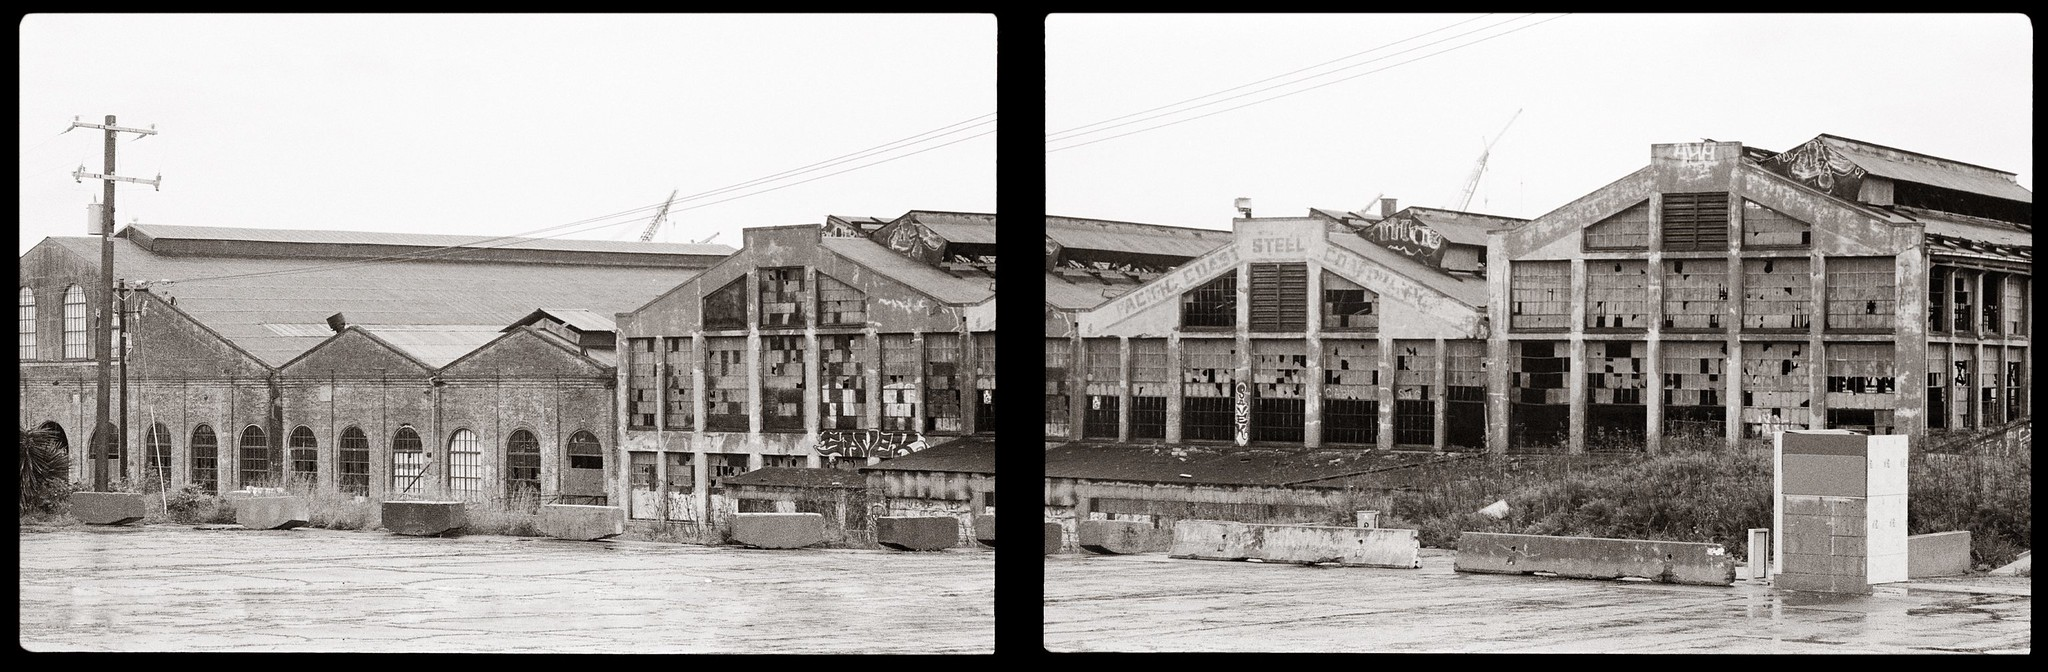 Dogpatch diptych | by efo